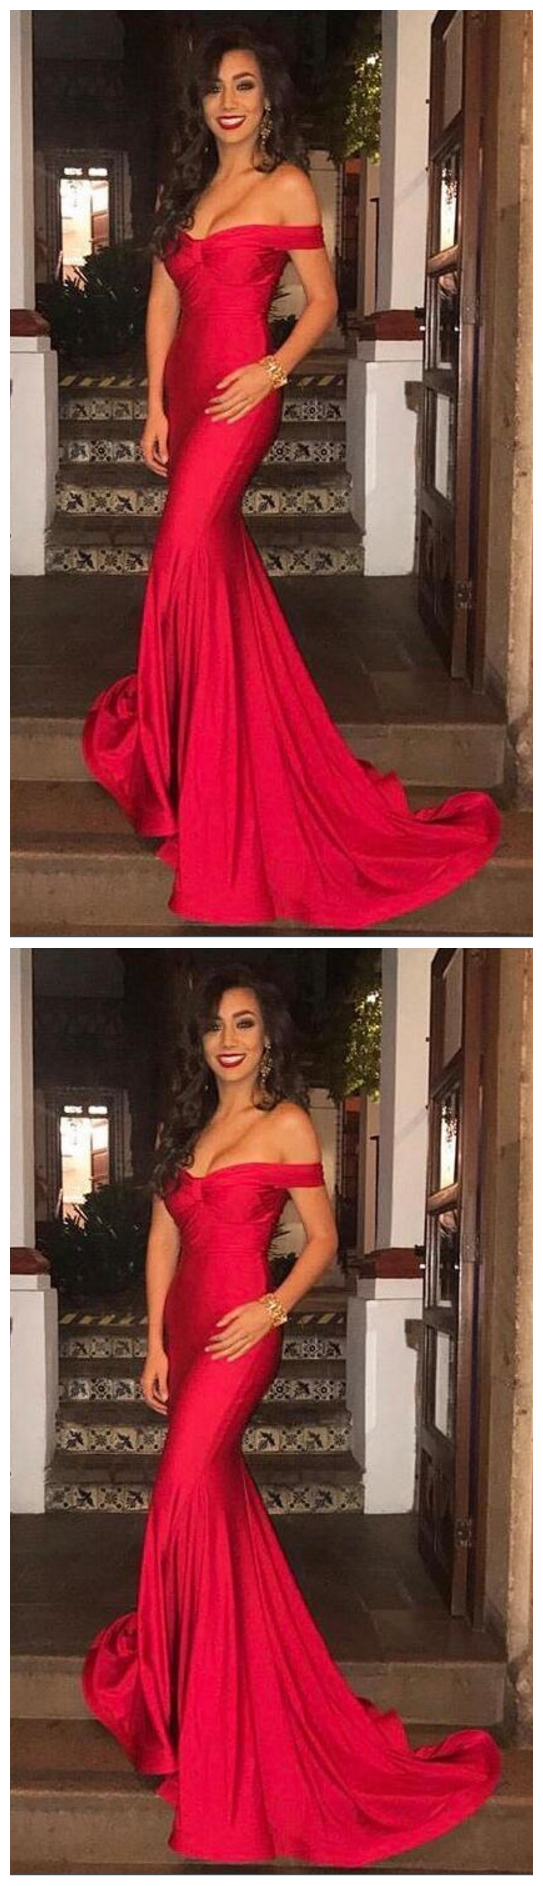 Shoulder Prom Dress,Cheap Prom Dress,Gorgeous Prom Dress,Sexy Red Mermaid Long